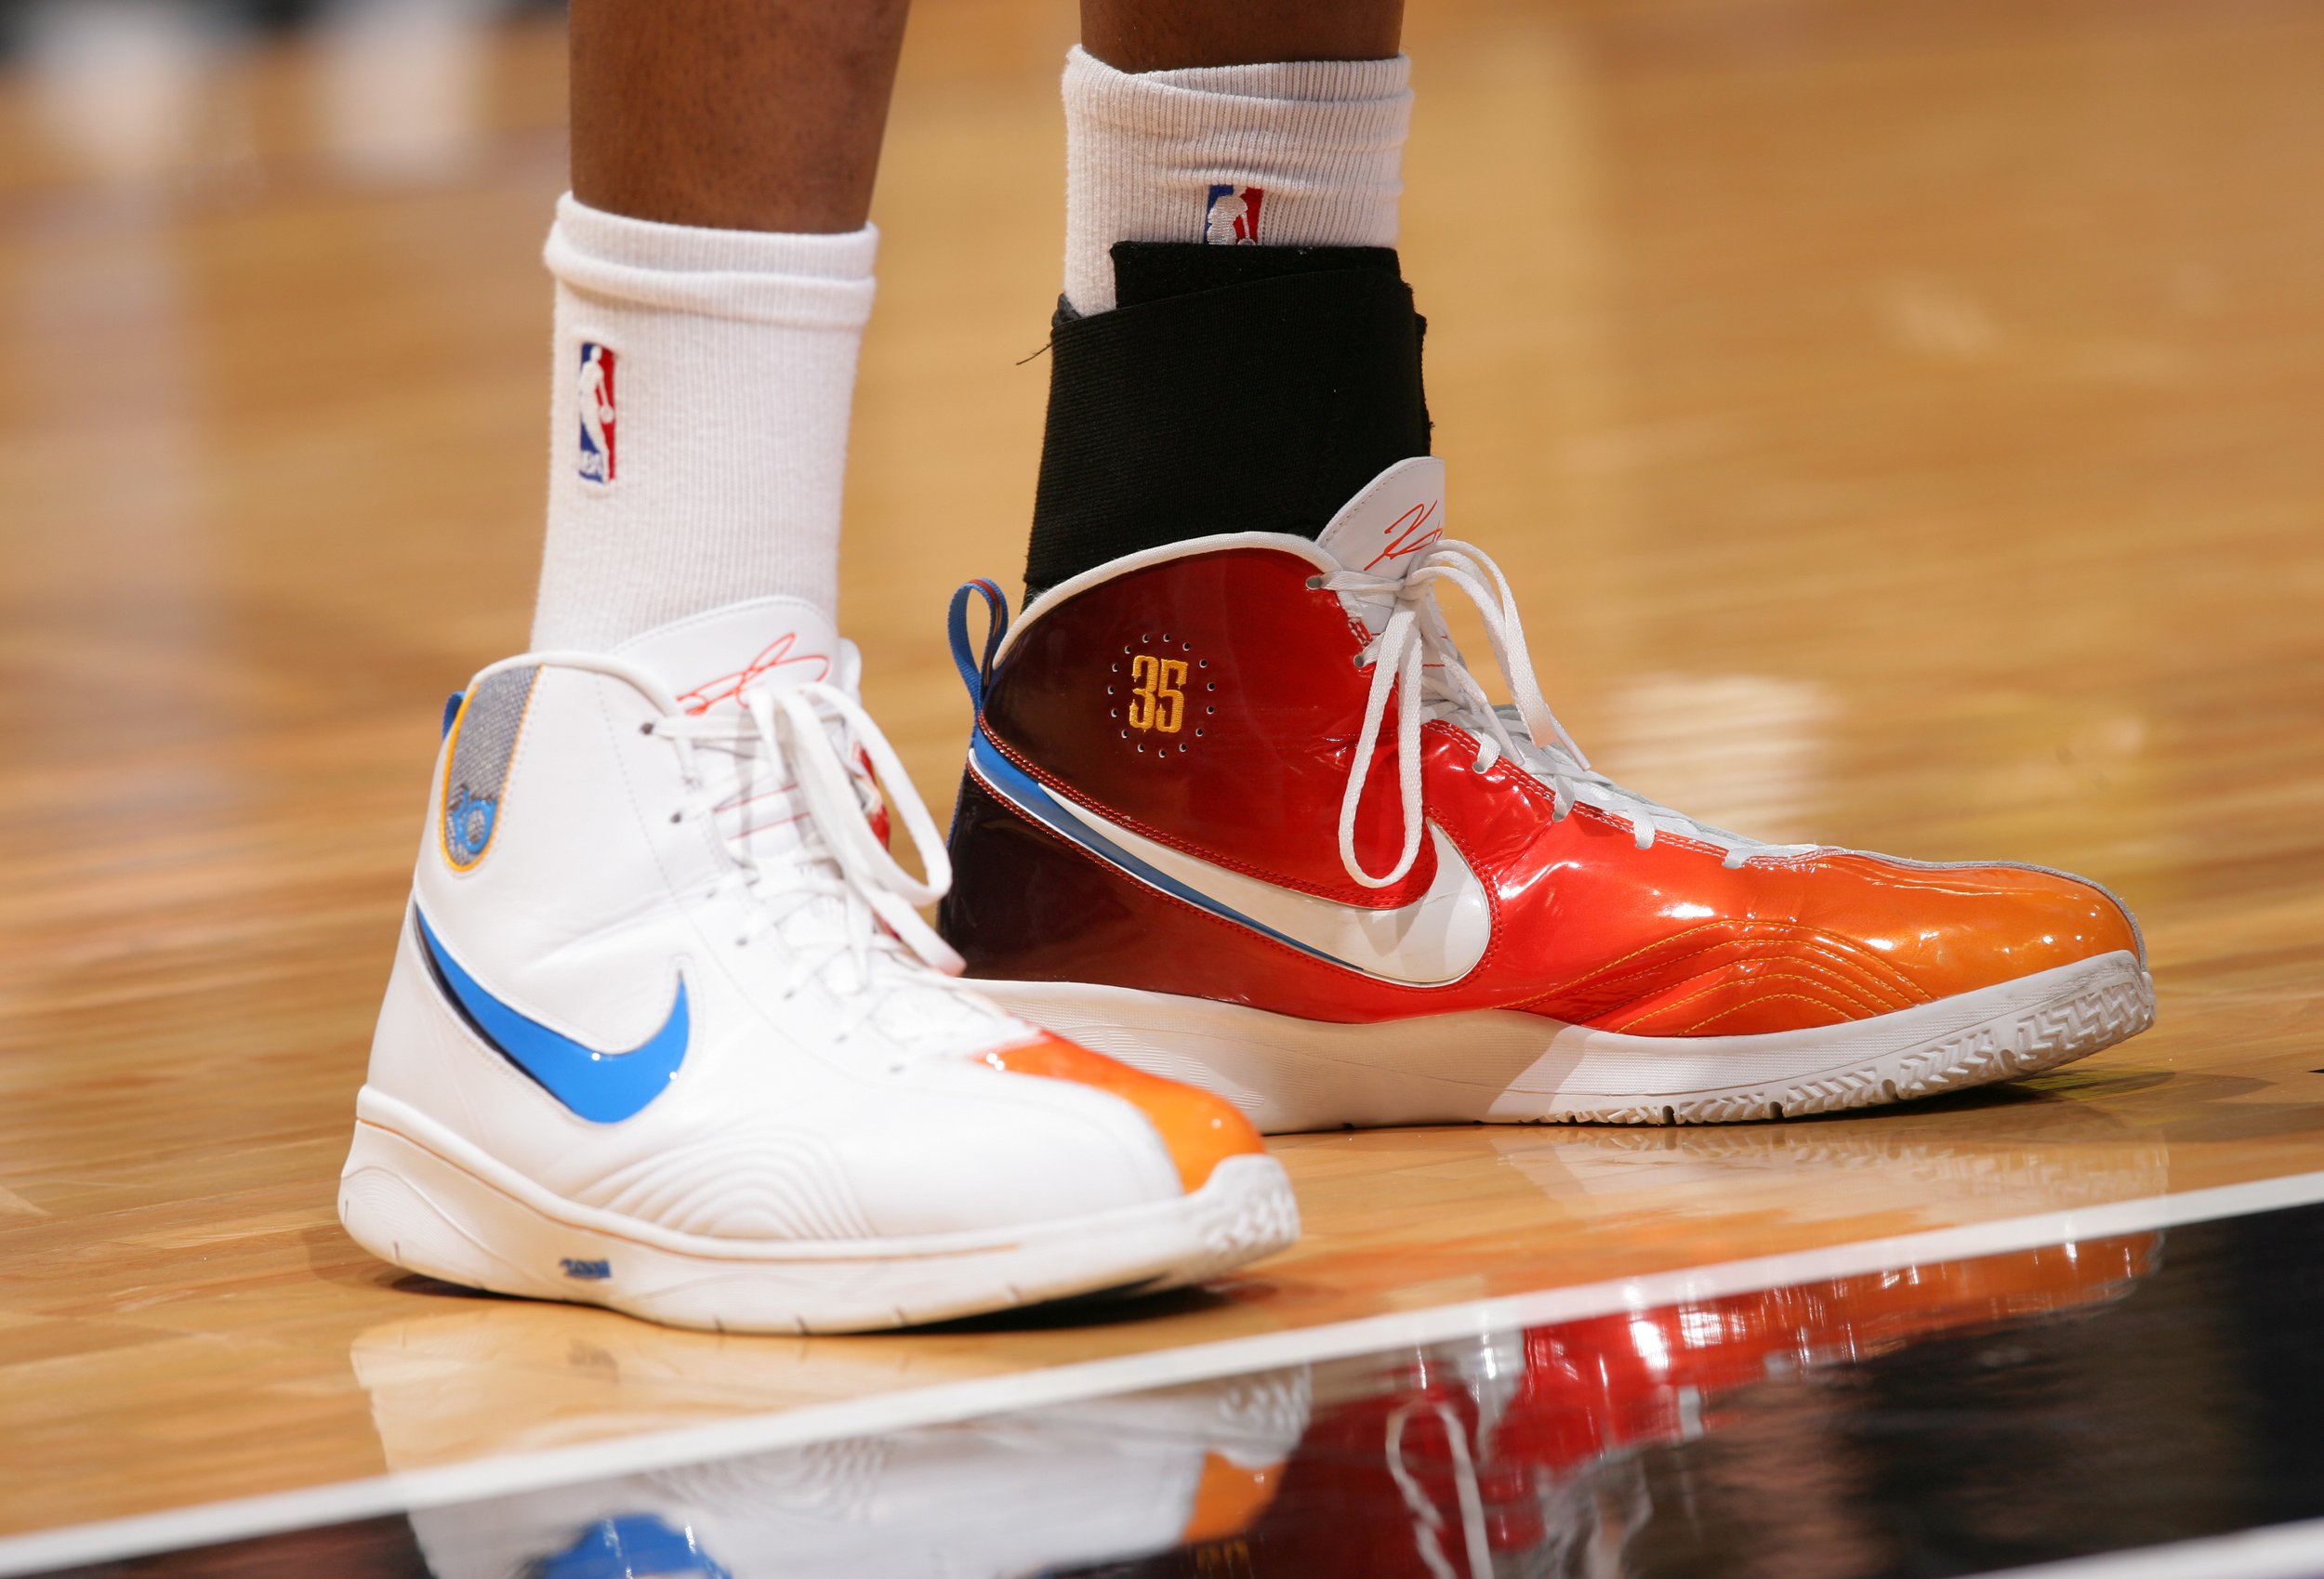 new product 91cb1 61f2b Kevin Durant of the Oklahoma City Thunder wears some flashy shoes while  taking on the Sacramento Kings on Feb. 1, 2009, at ARCO Arena in  Sacramento, ...